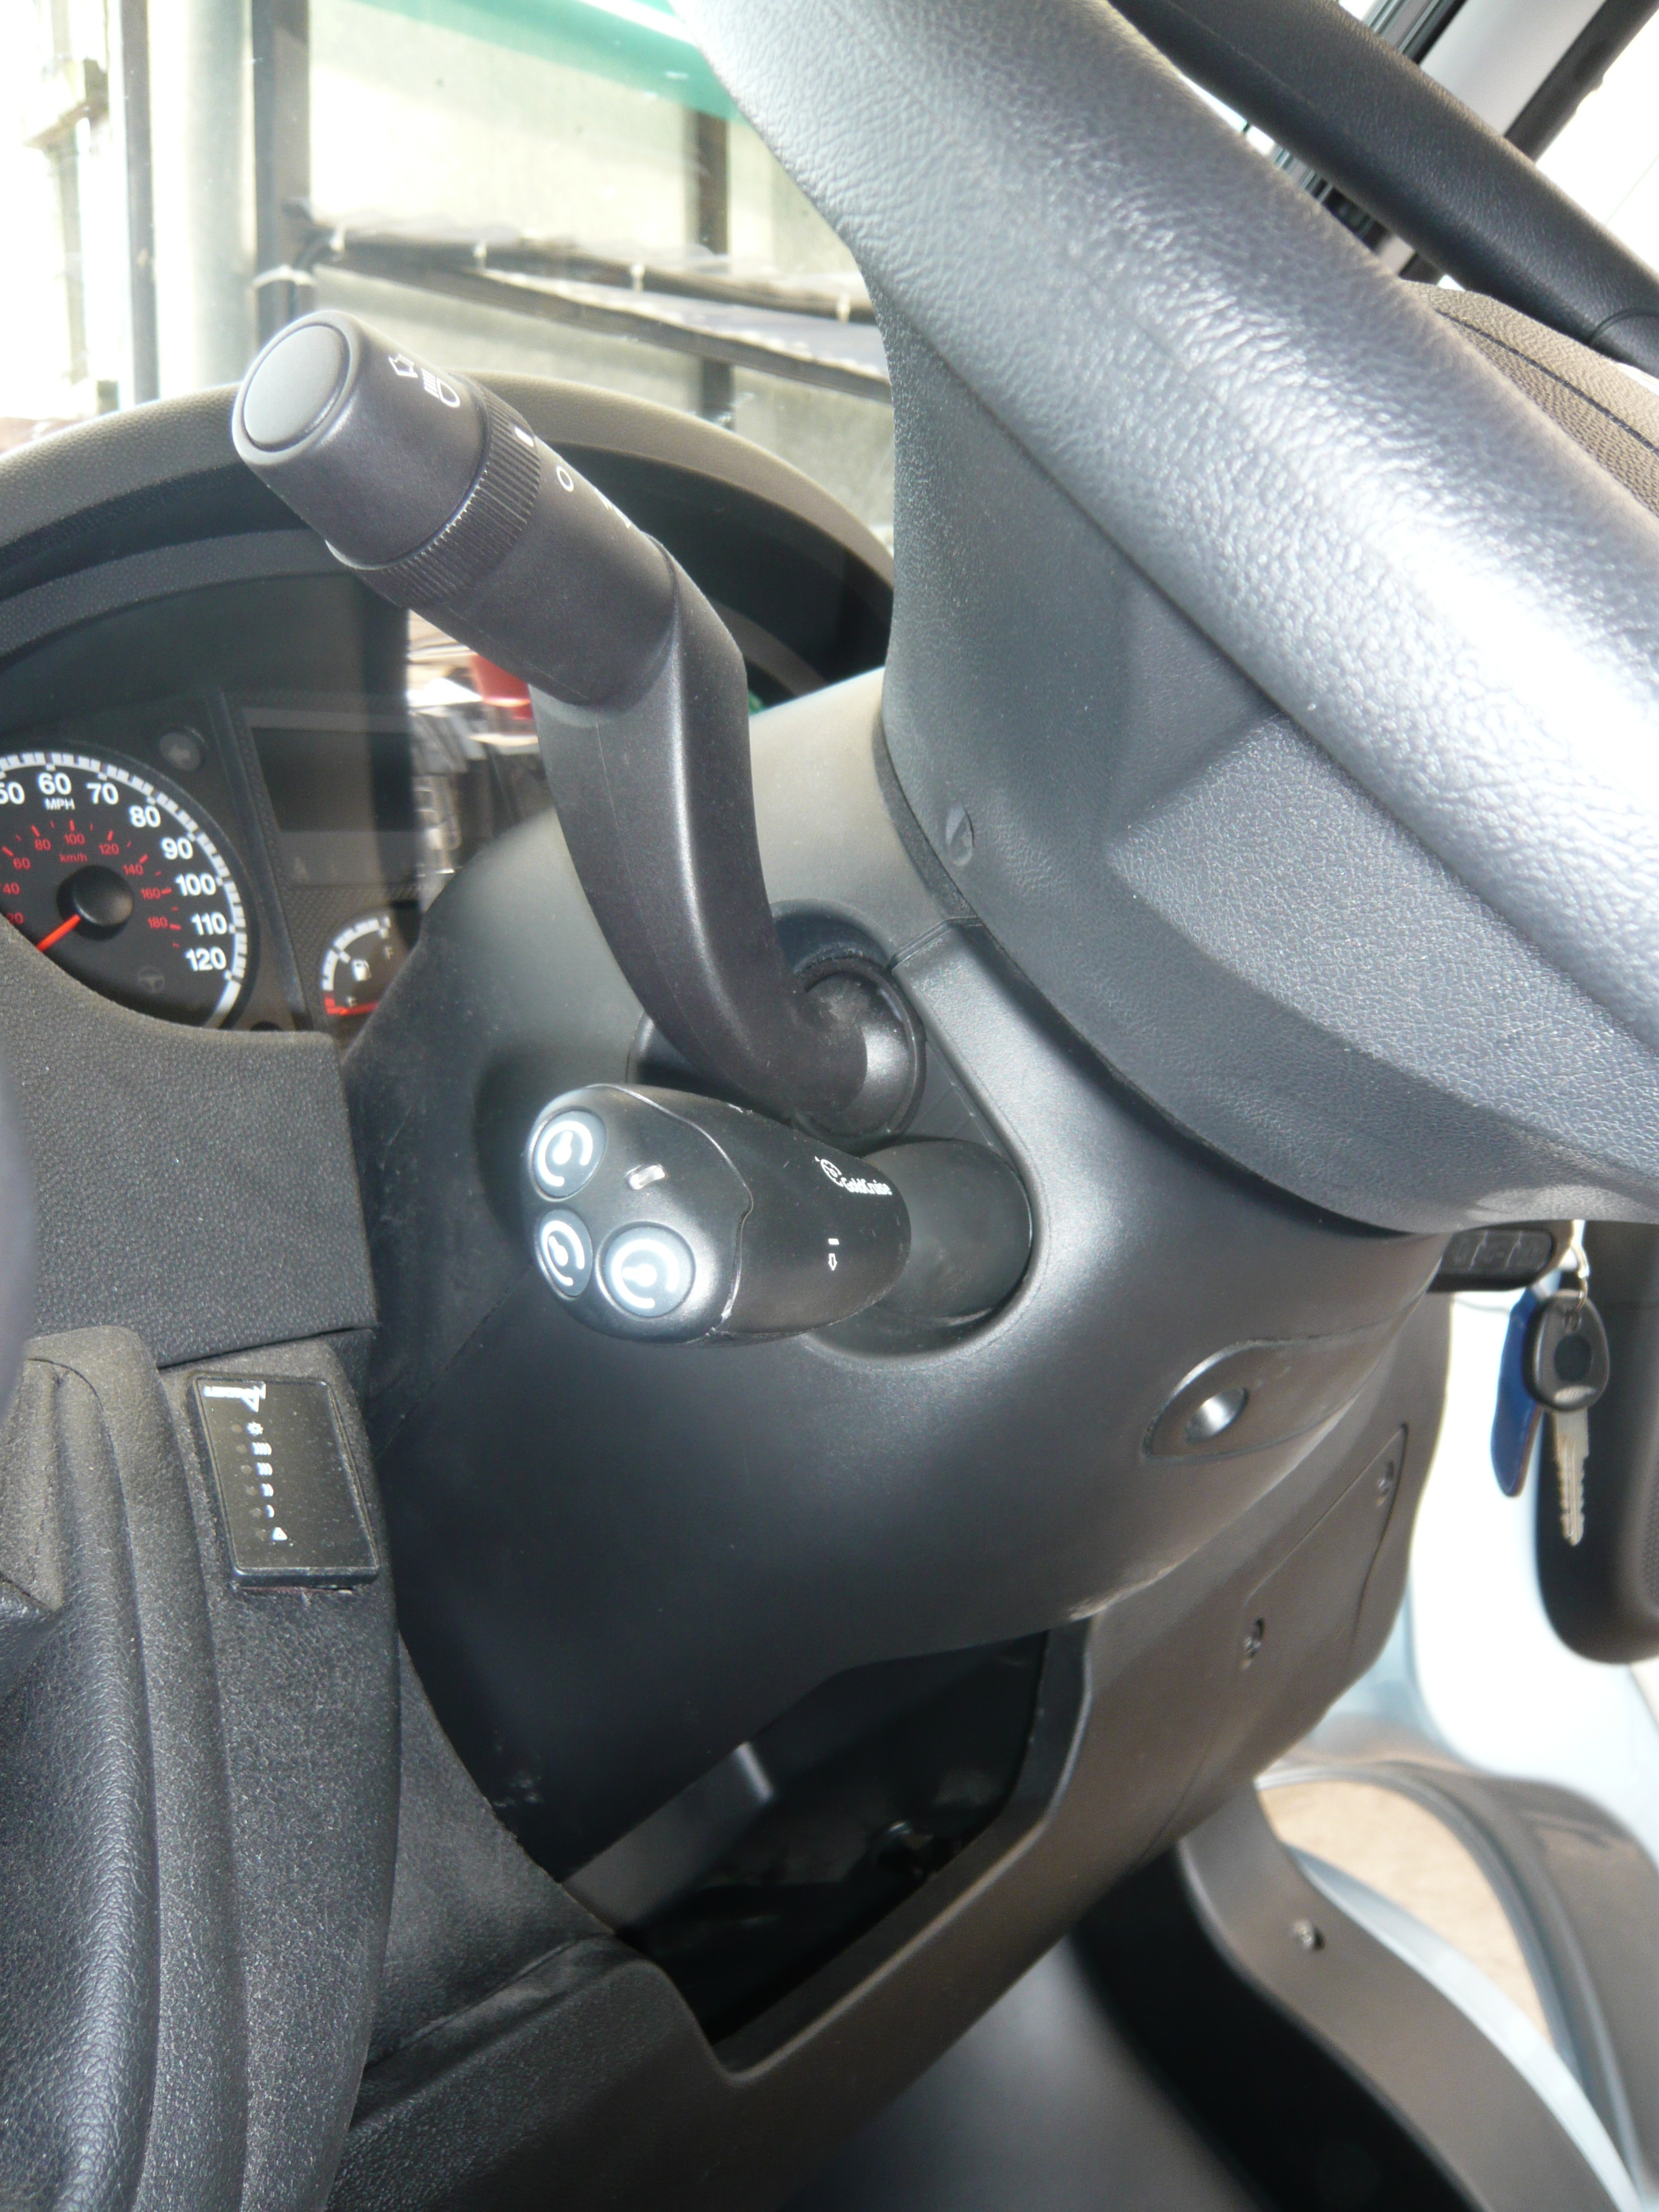 2012 Fiat Ducato Fitted With Cruise Control